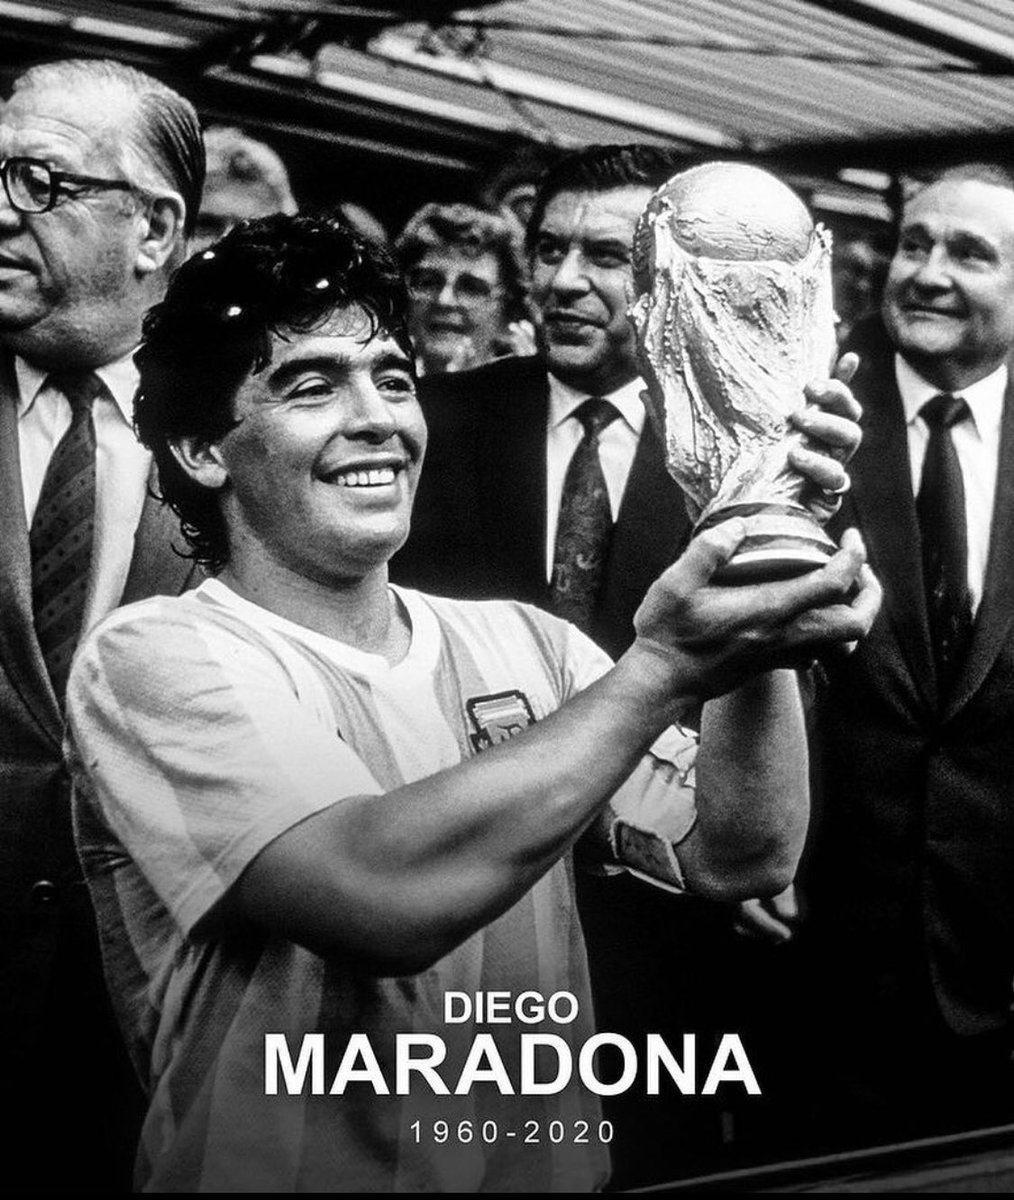 Mon idole est décédée, RIP Diego Armando Maradona, my first ever football shirt, the man behind my love for football  Gracias El Pibe 💔 🇦🇷 🇦🇷 🇦🇷 🇦🇷 🇦🇷